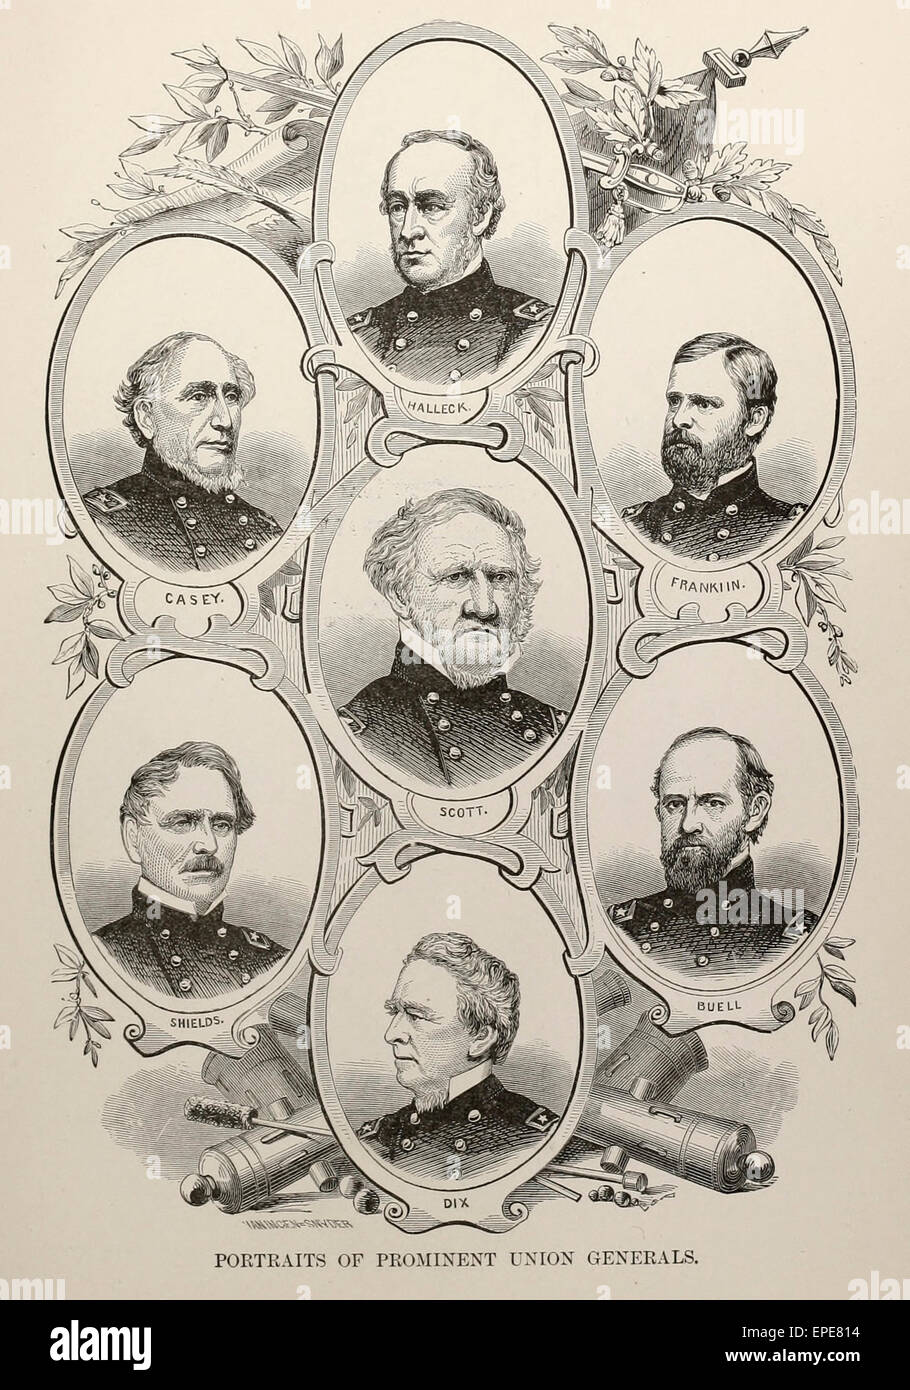 Portraits of Prominent Union Generals - USA Civil War - Casey, Scott, Halleck, Shield, Franklin, Buell, Dix - Stock Image